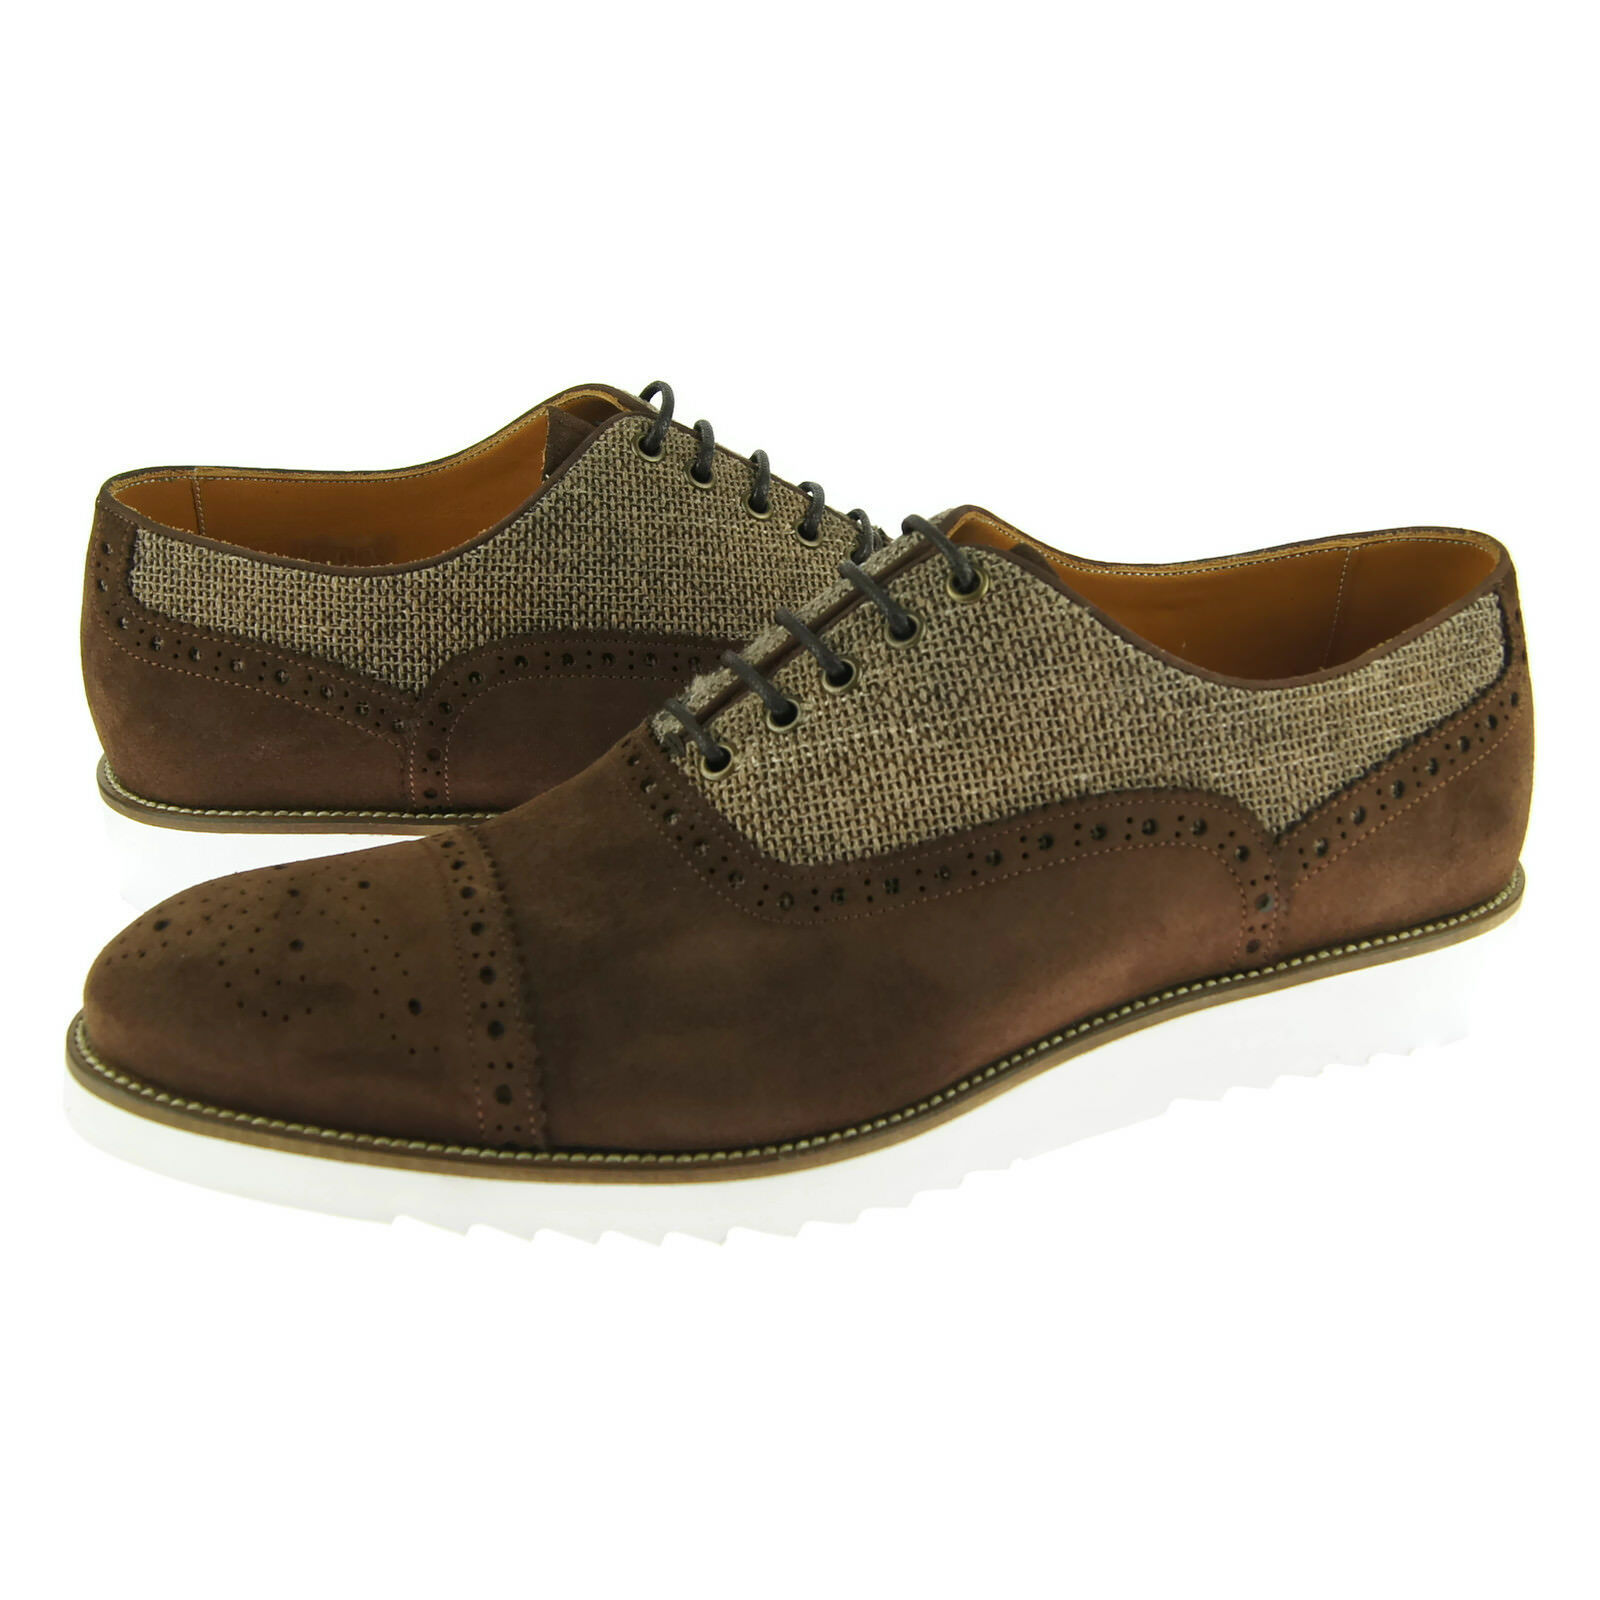 Alex D  Hampton  Brogue Oxford, Men's Dress Casual shoes, Brown Suede